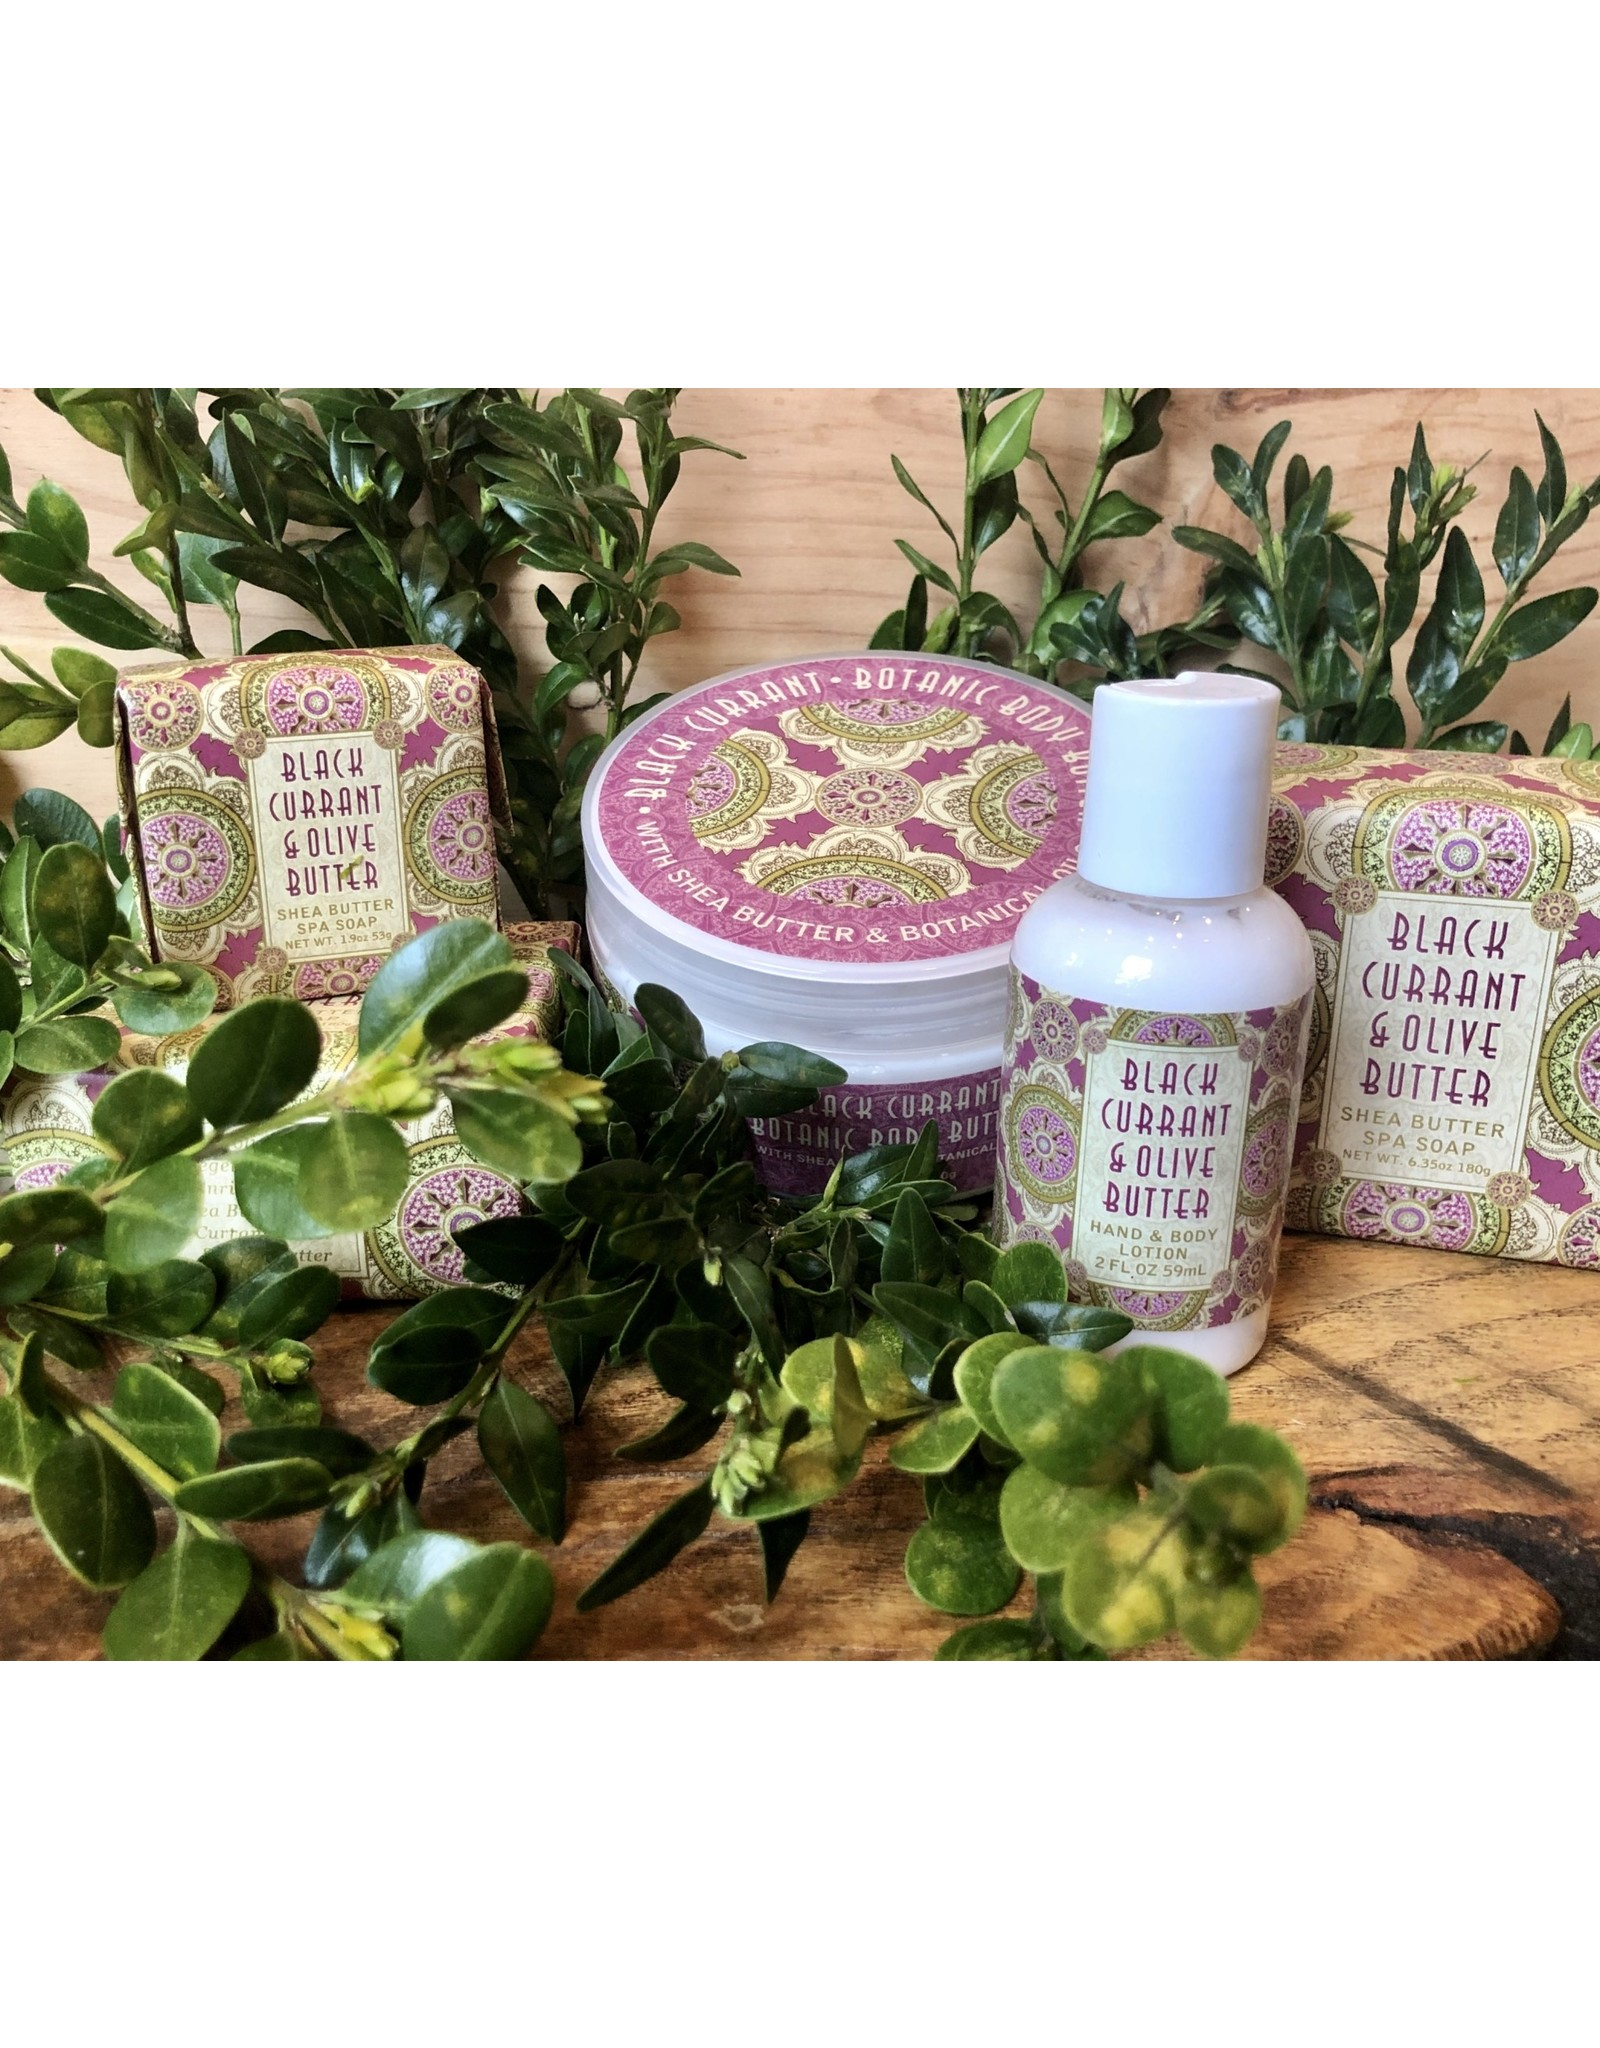 Black Currant Spa Products